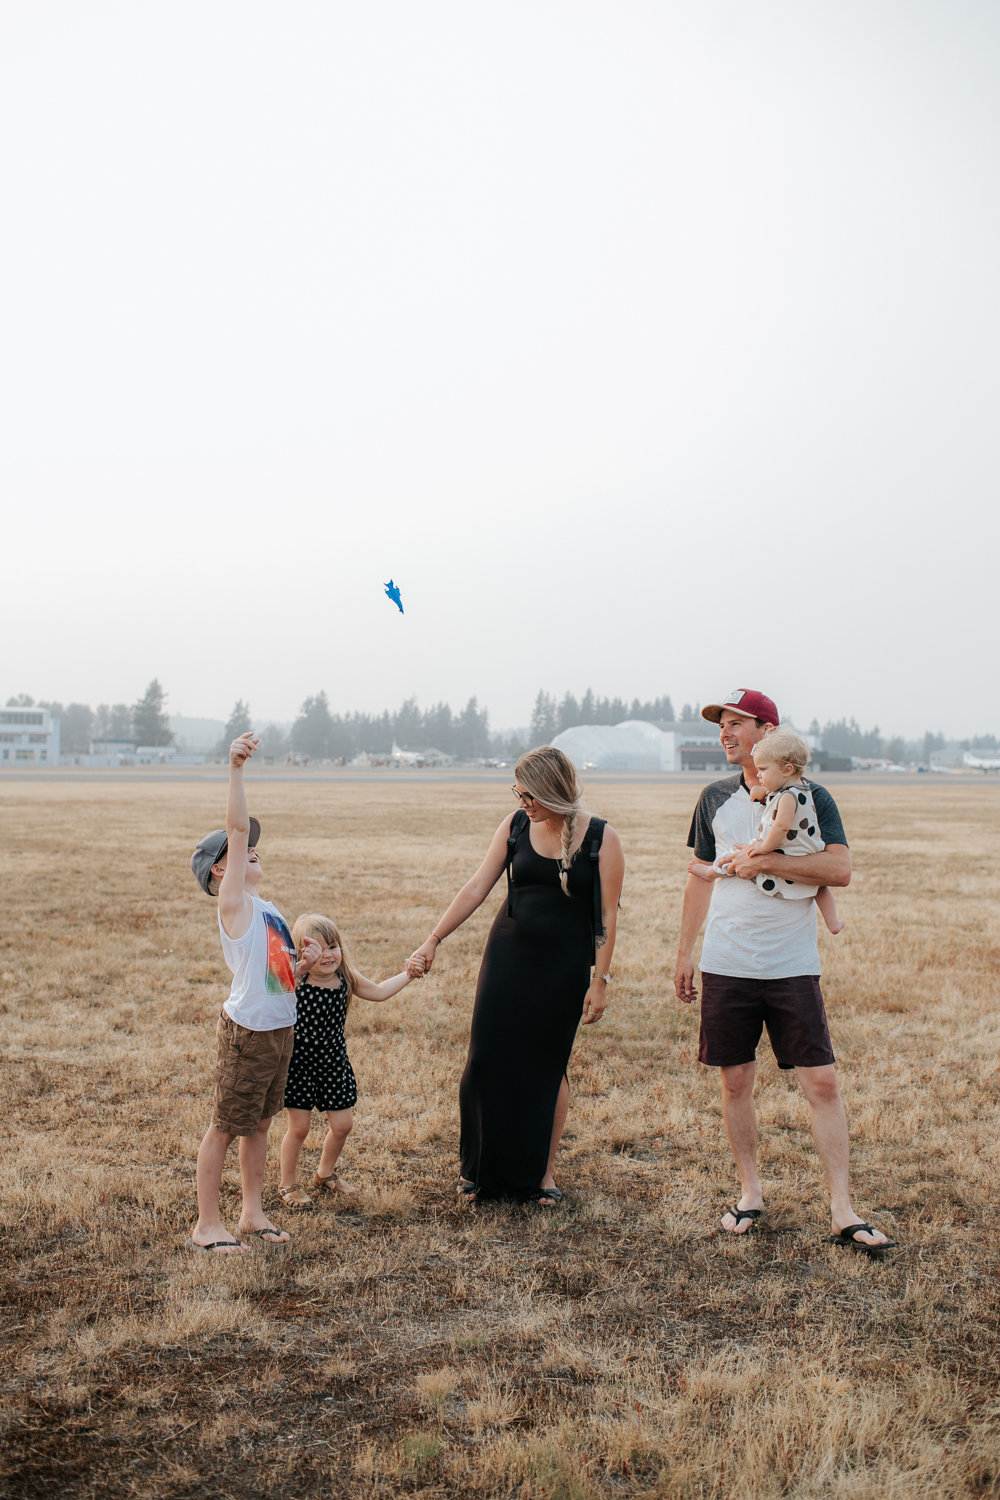 Abbotsford Airshow Family Event + Brew North Strong 19+ Event. Photo by JulieChristinePhotography.com